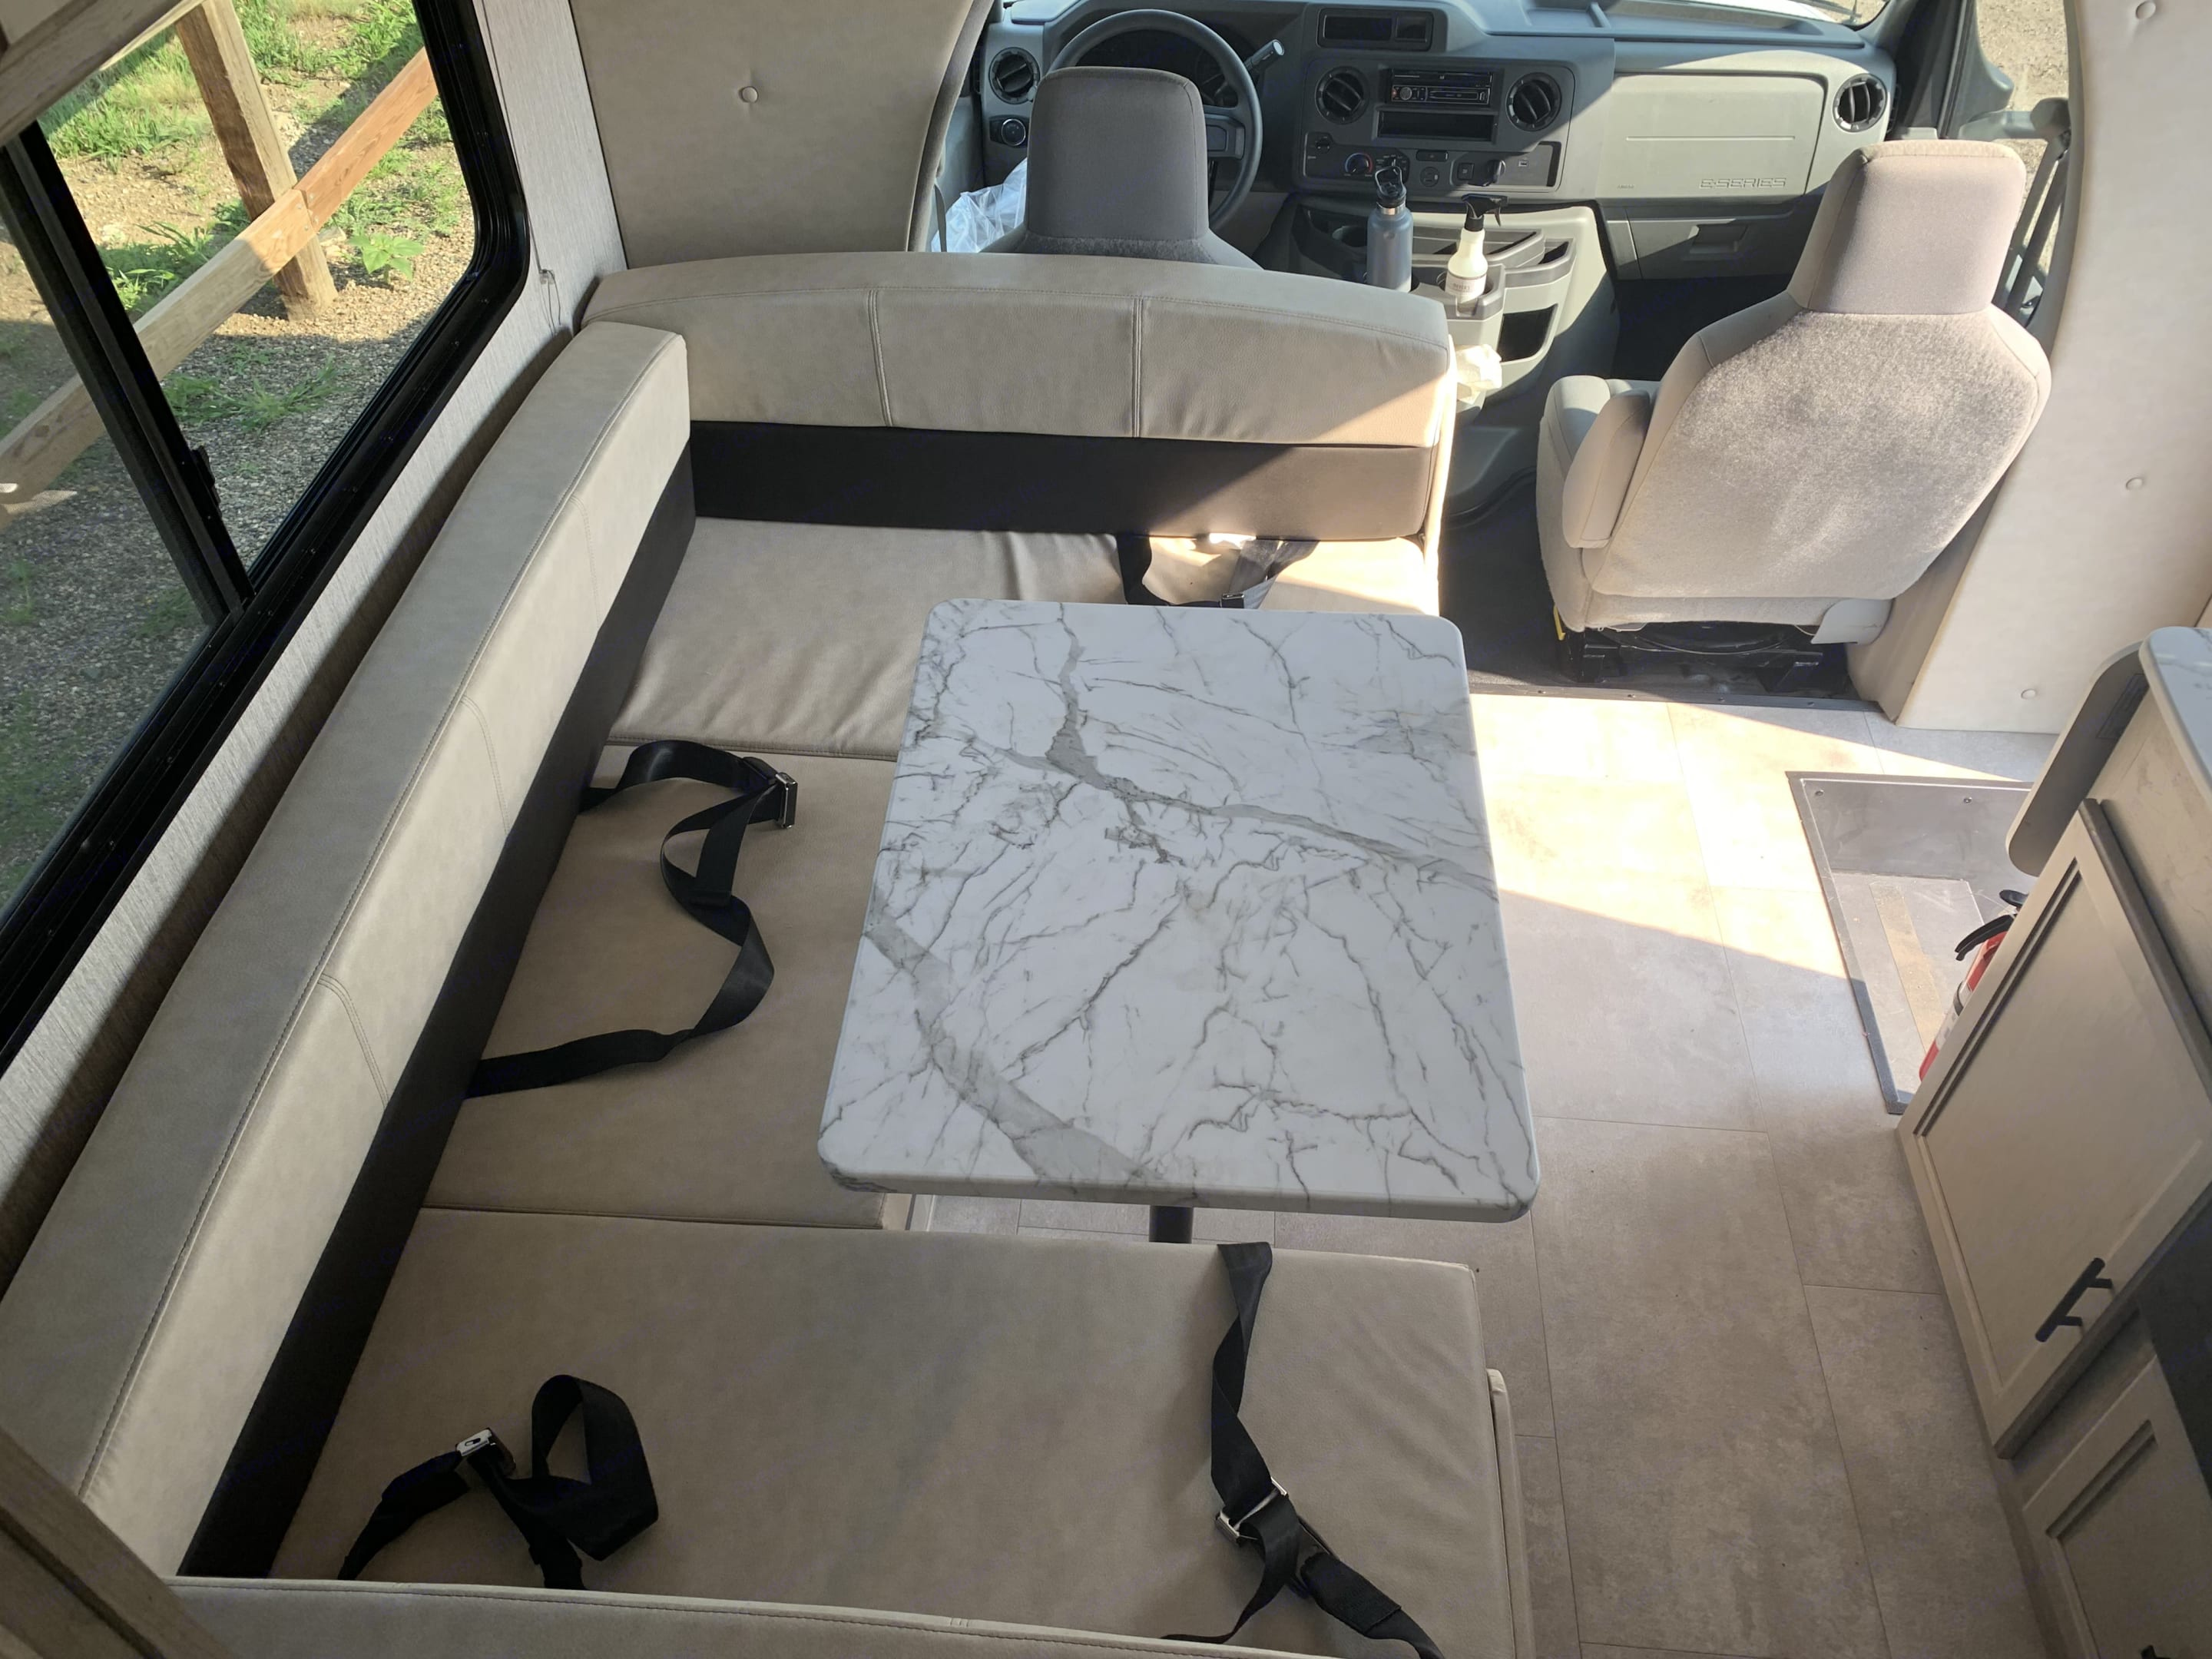 Dinette includes storage under seats, 4 seatbelts, and converts into a bed. . Coachmen Cross Trail 2021